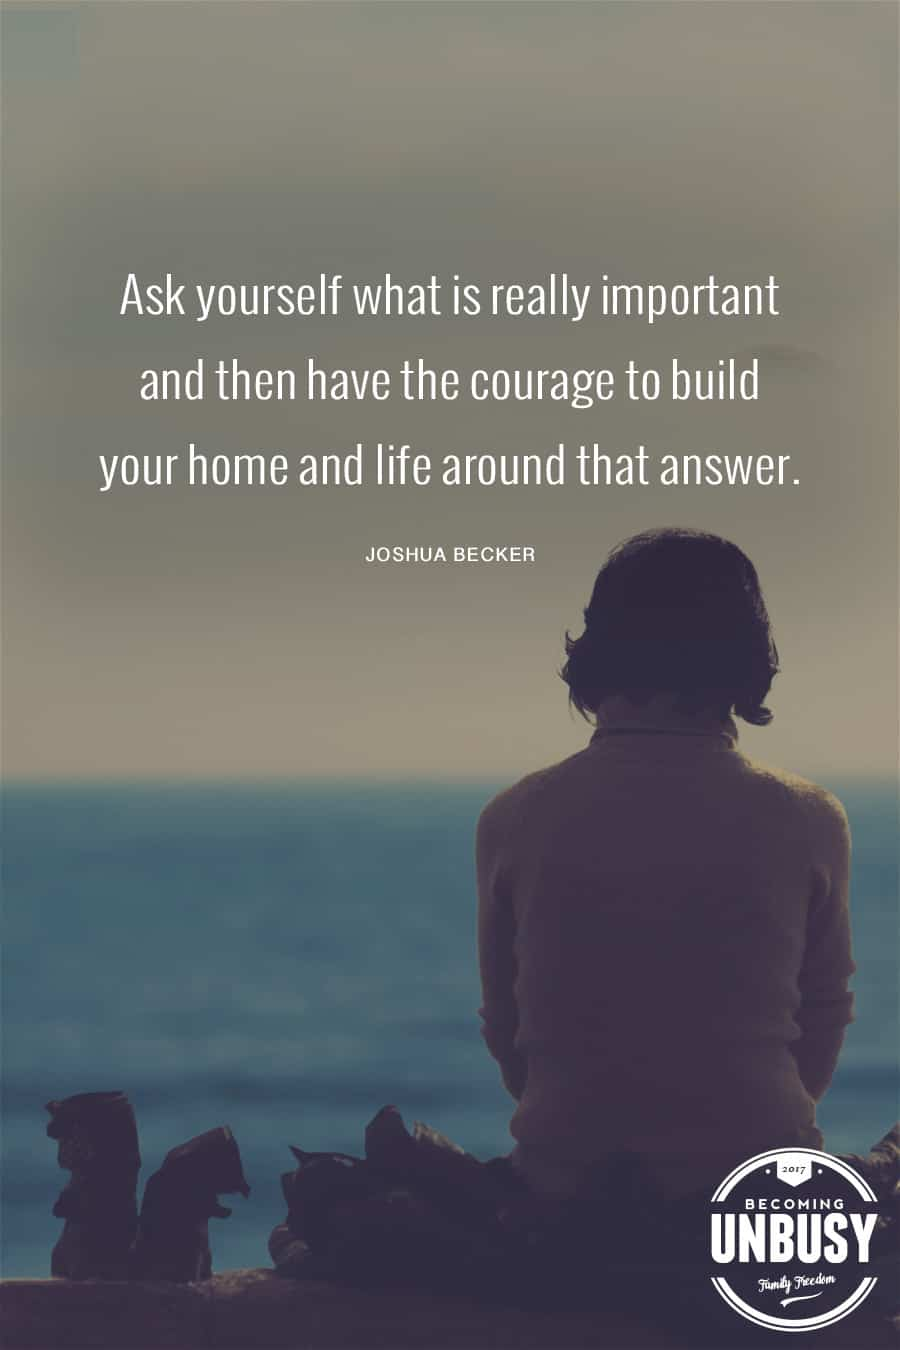 Ask yourself what is really important and then have the courage to build your home and life around that answer. — Joshua Becker #quote #minimalism #intentionalliving #becomingunbusy #joshuabecker *Loving this collection of quotes